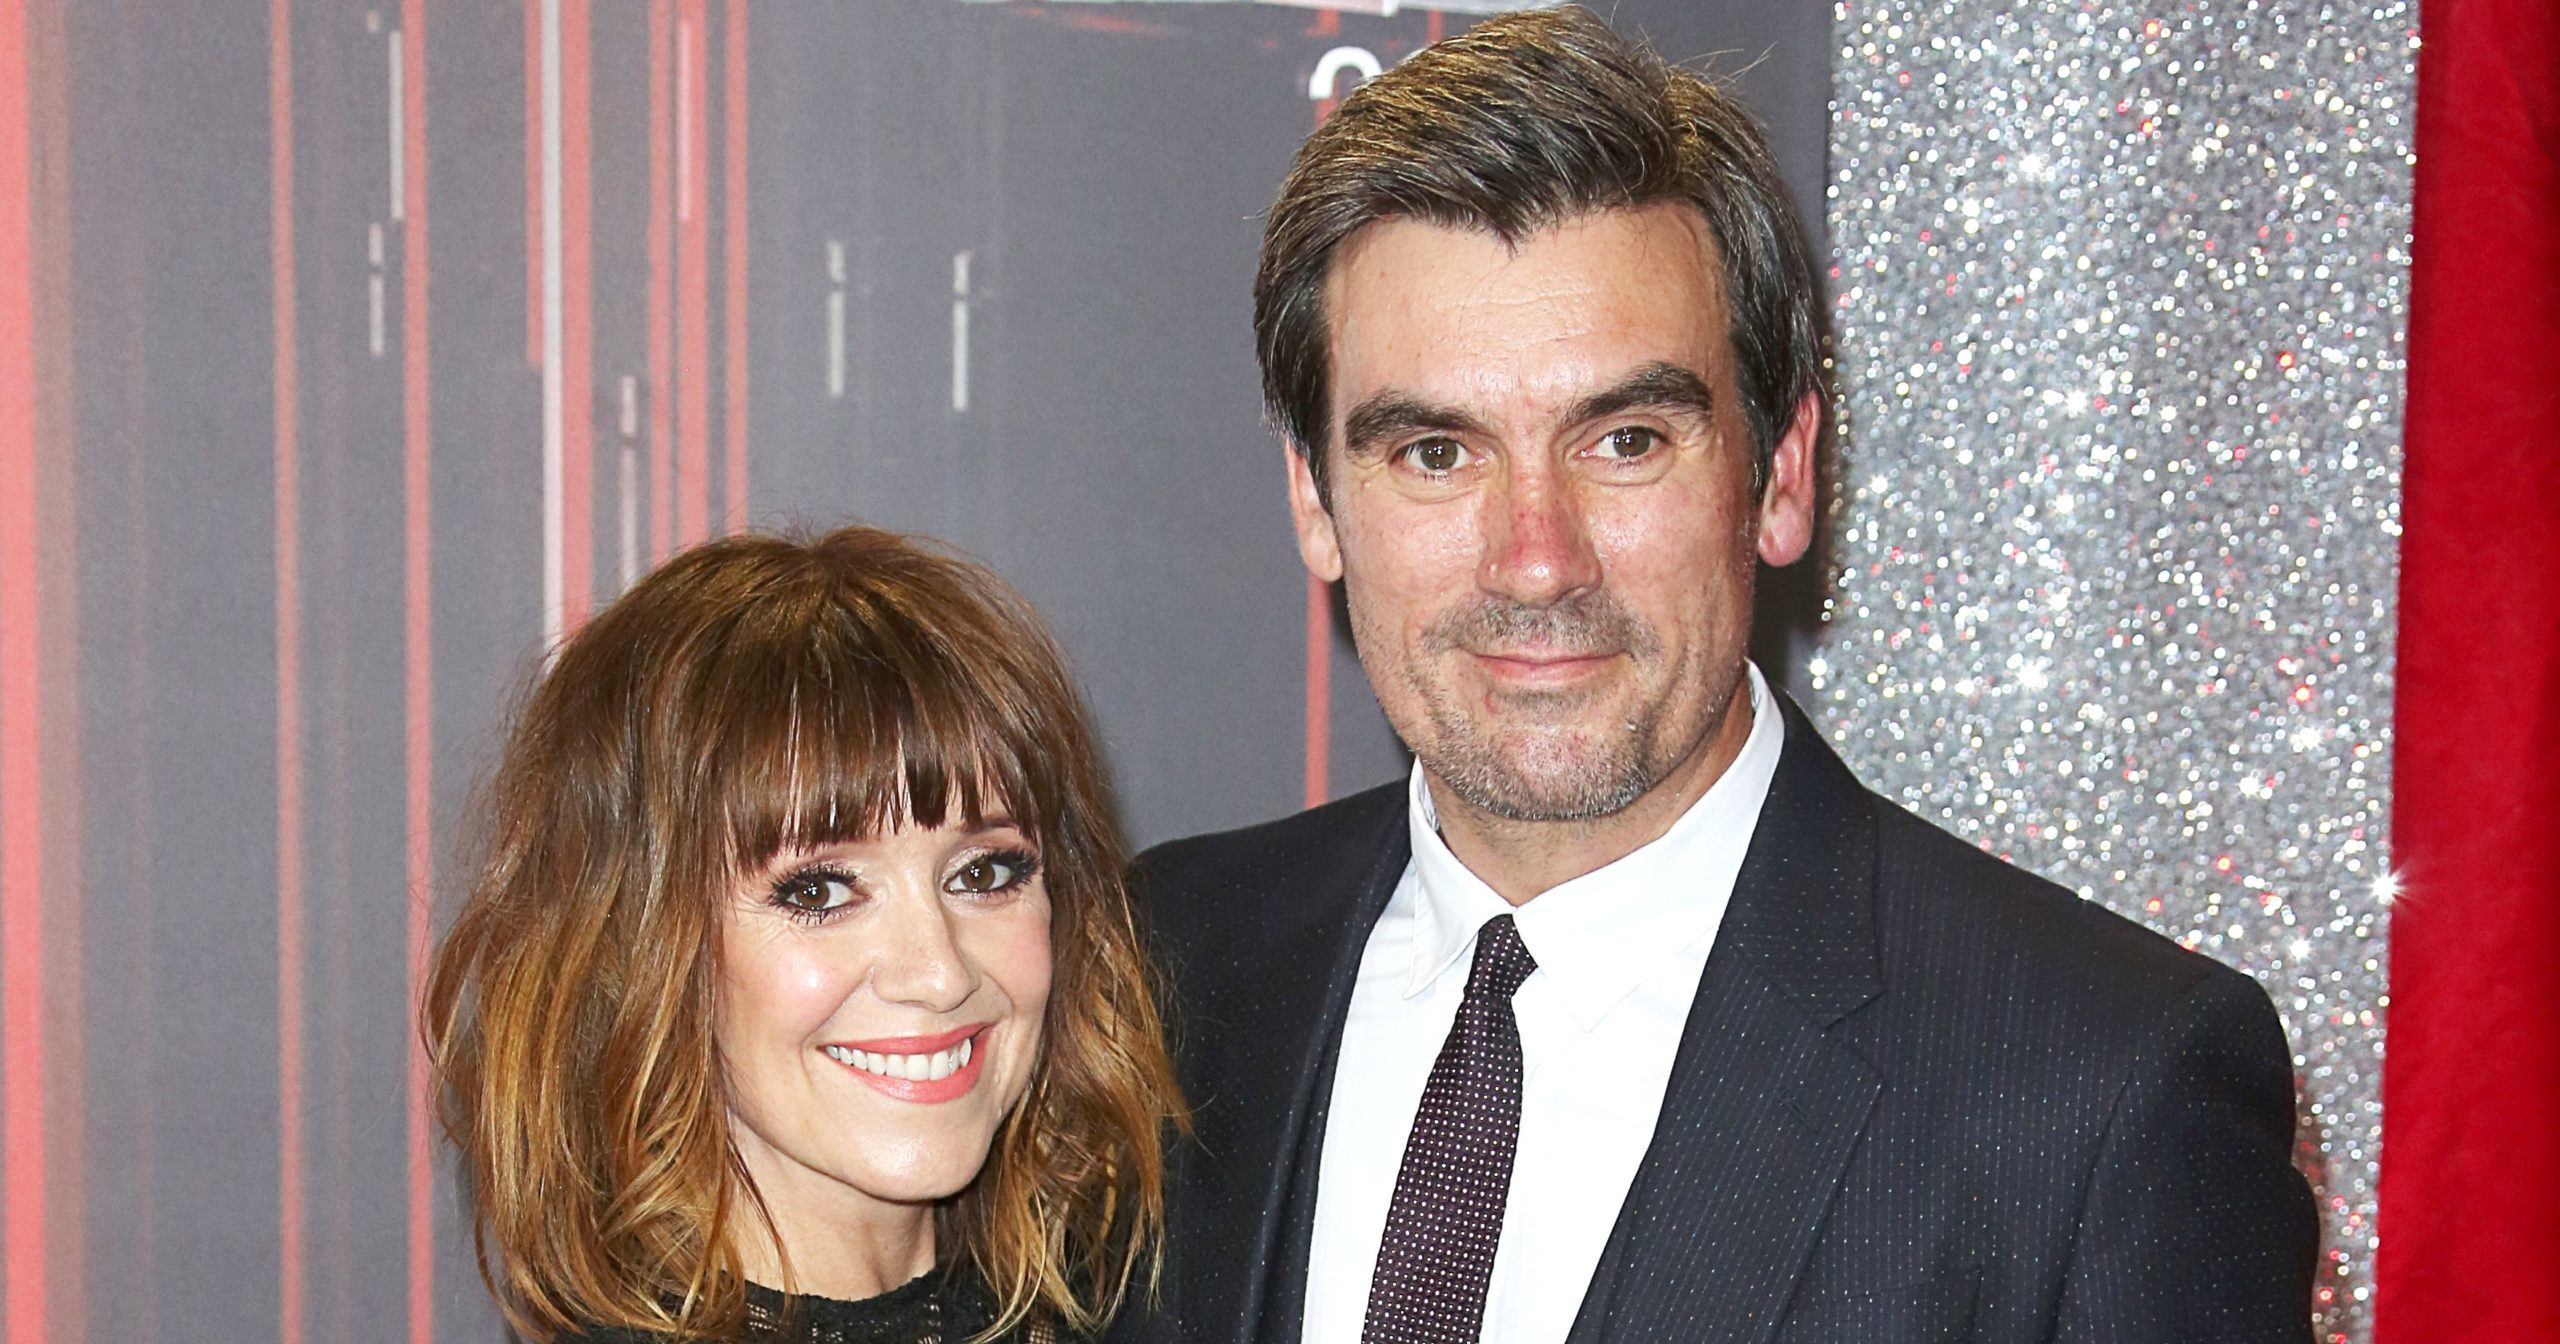 Emmerdale real-life couple Jeff Hordley and Zoe Henry 'prefer not to work together'